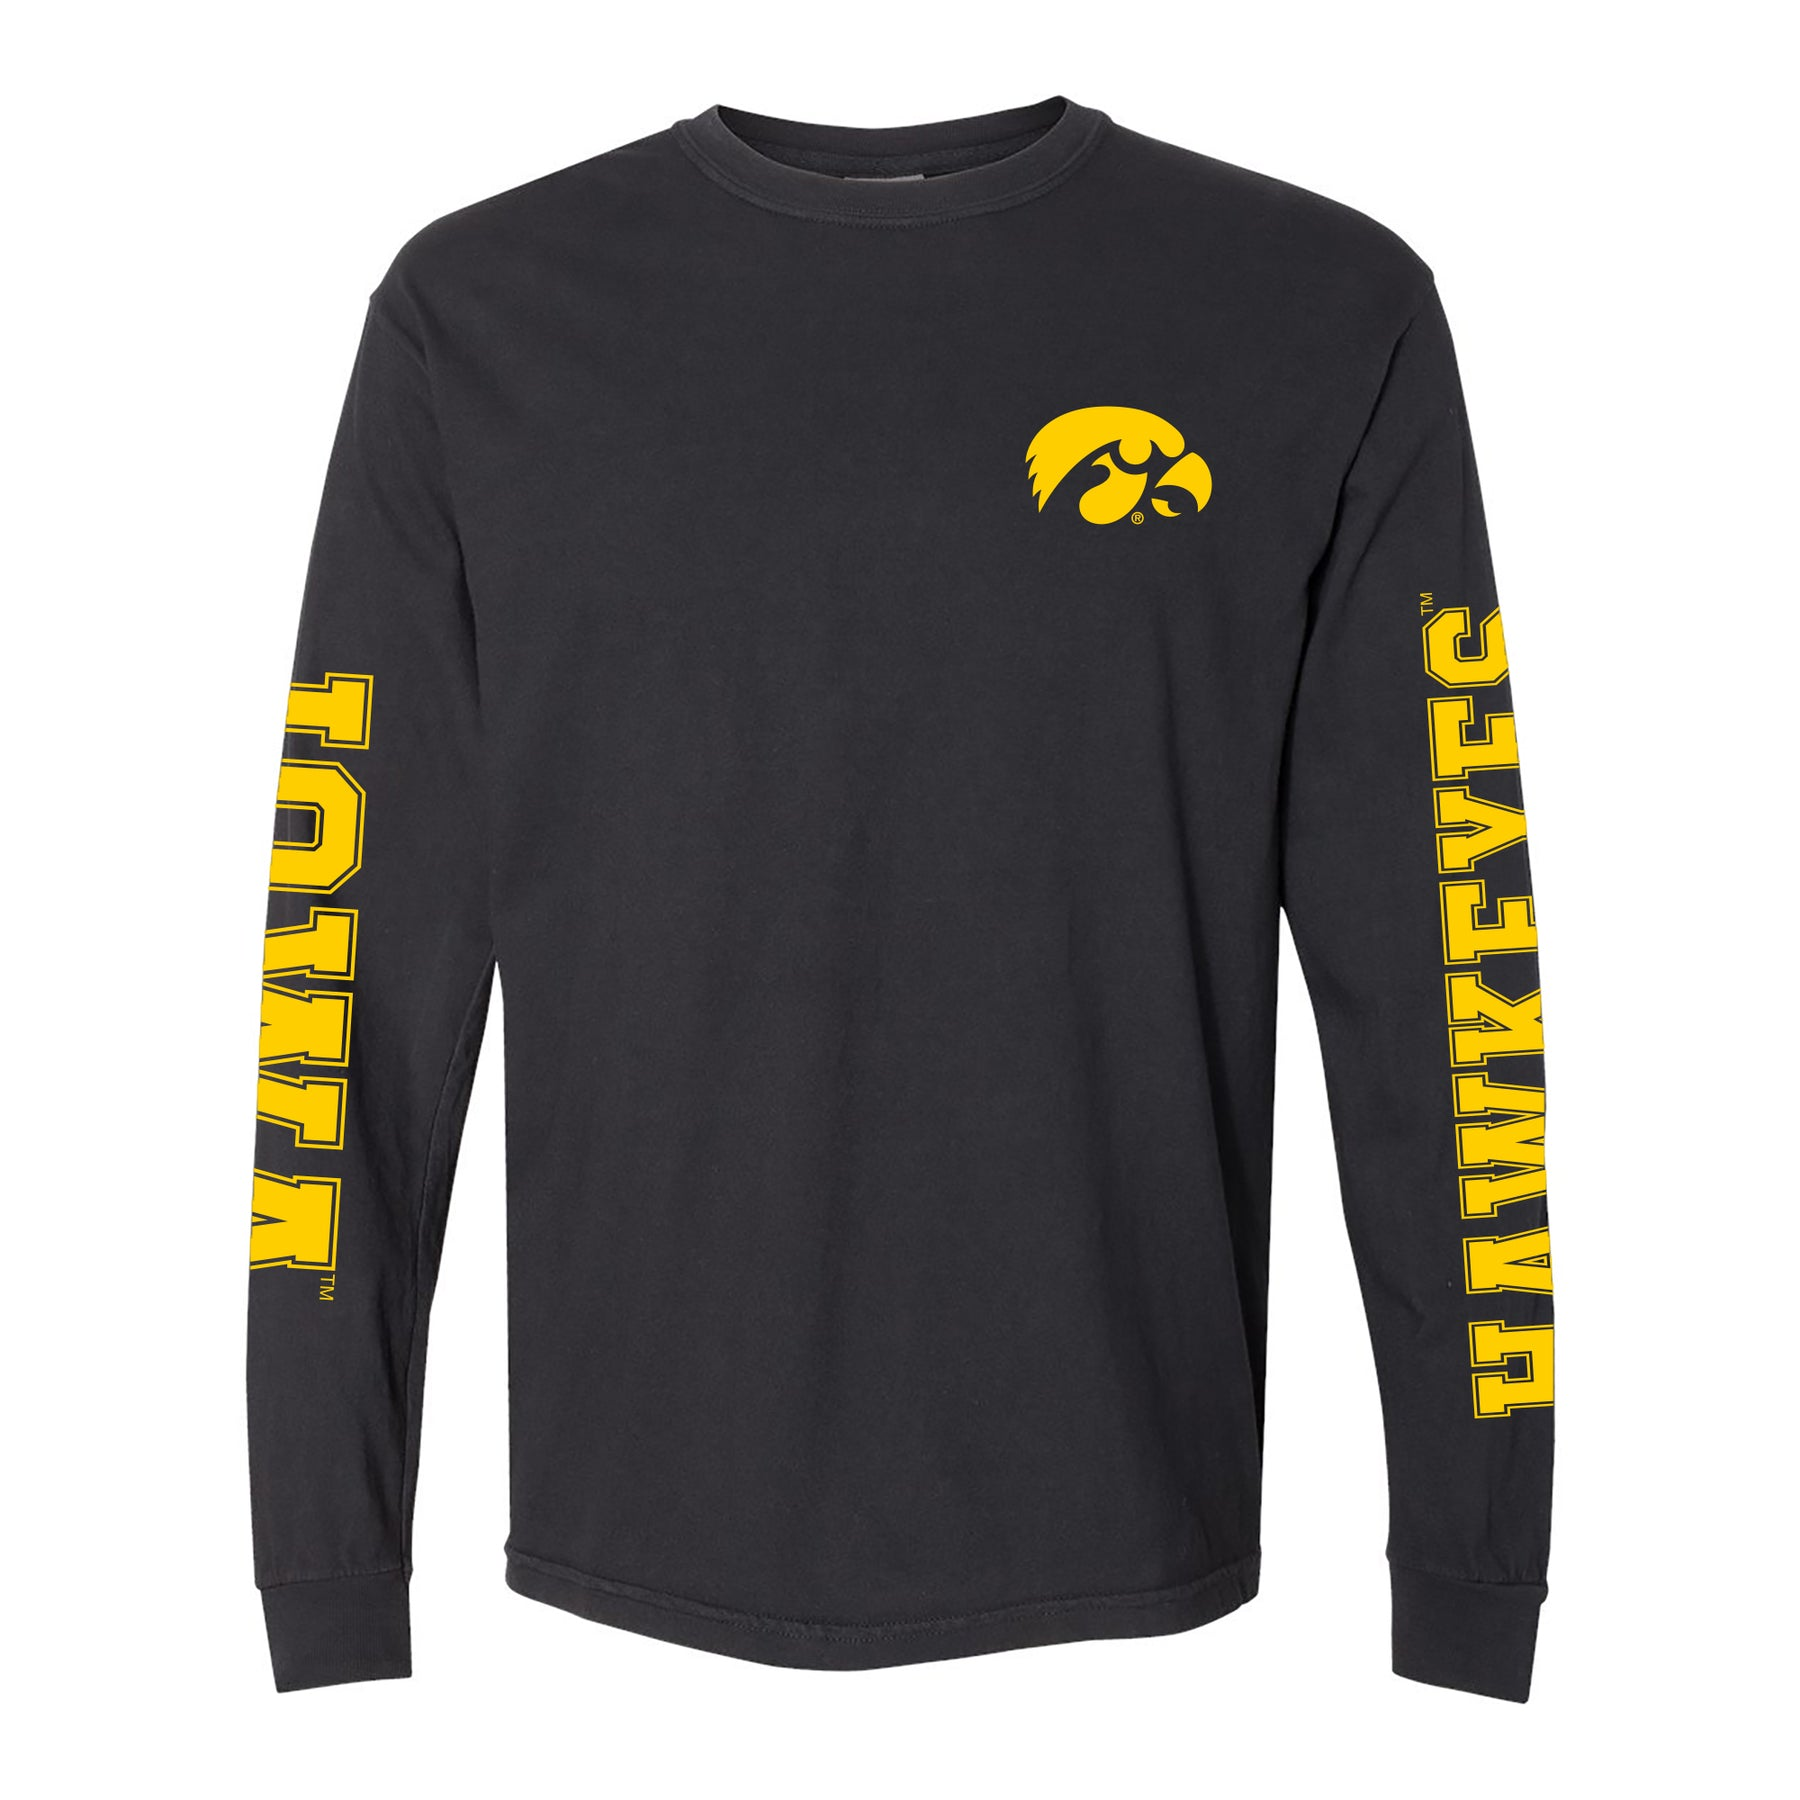 promo code b569a 7c6d2 University of Iowa Hawkeyes Double Sleeve Comfort Colors Long Sleeve T  Shirt - Black